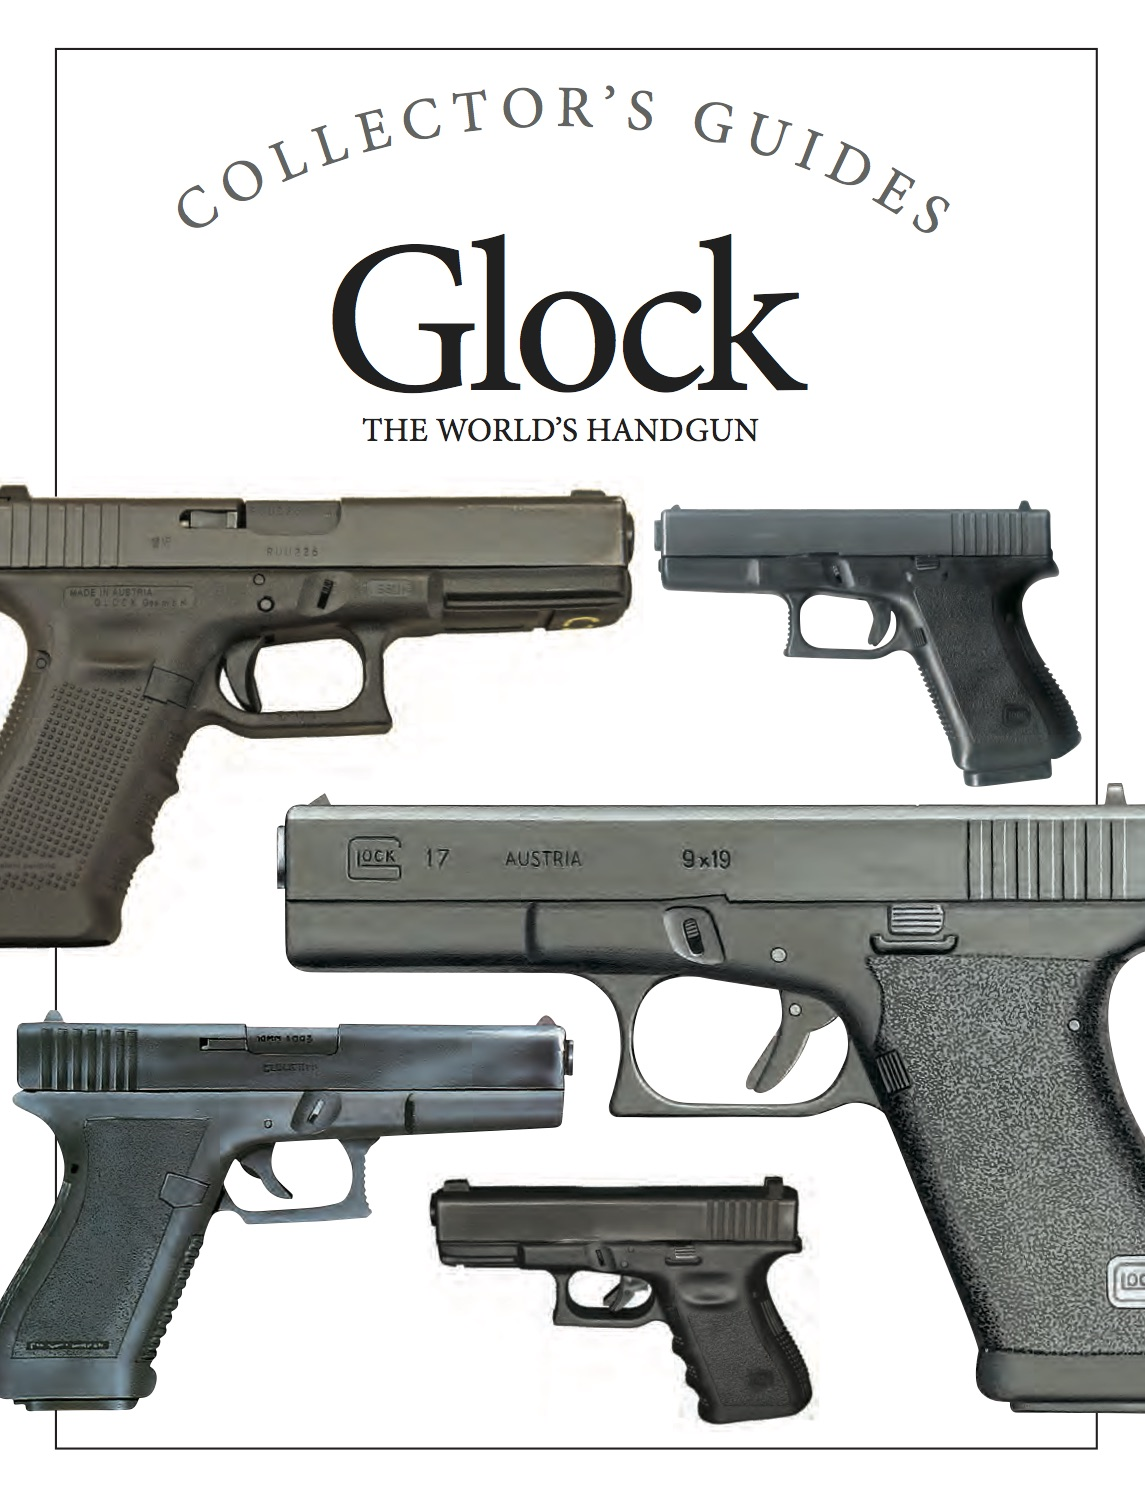 Glock: Collector's Guides